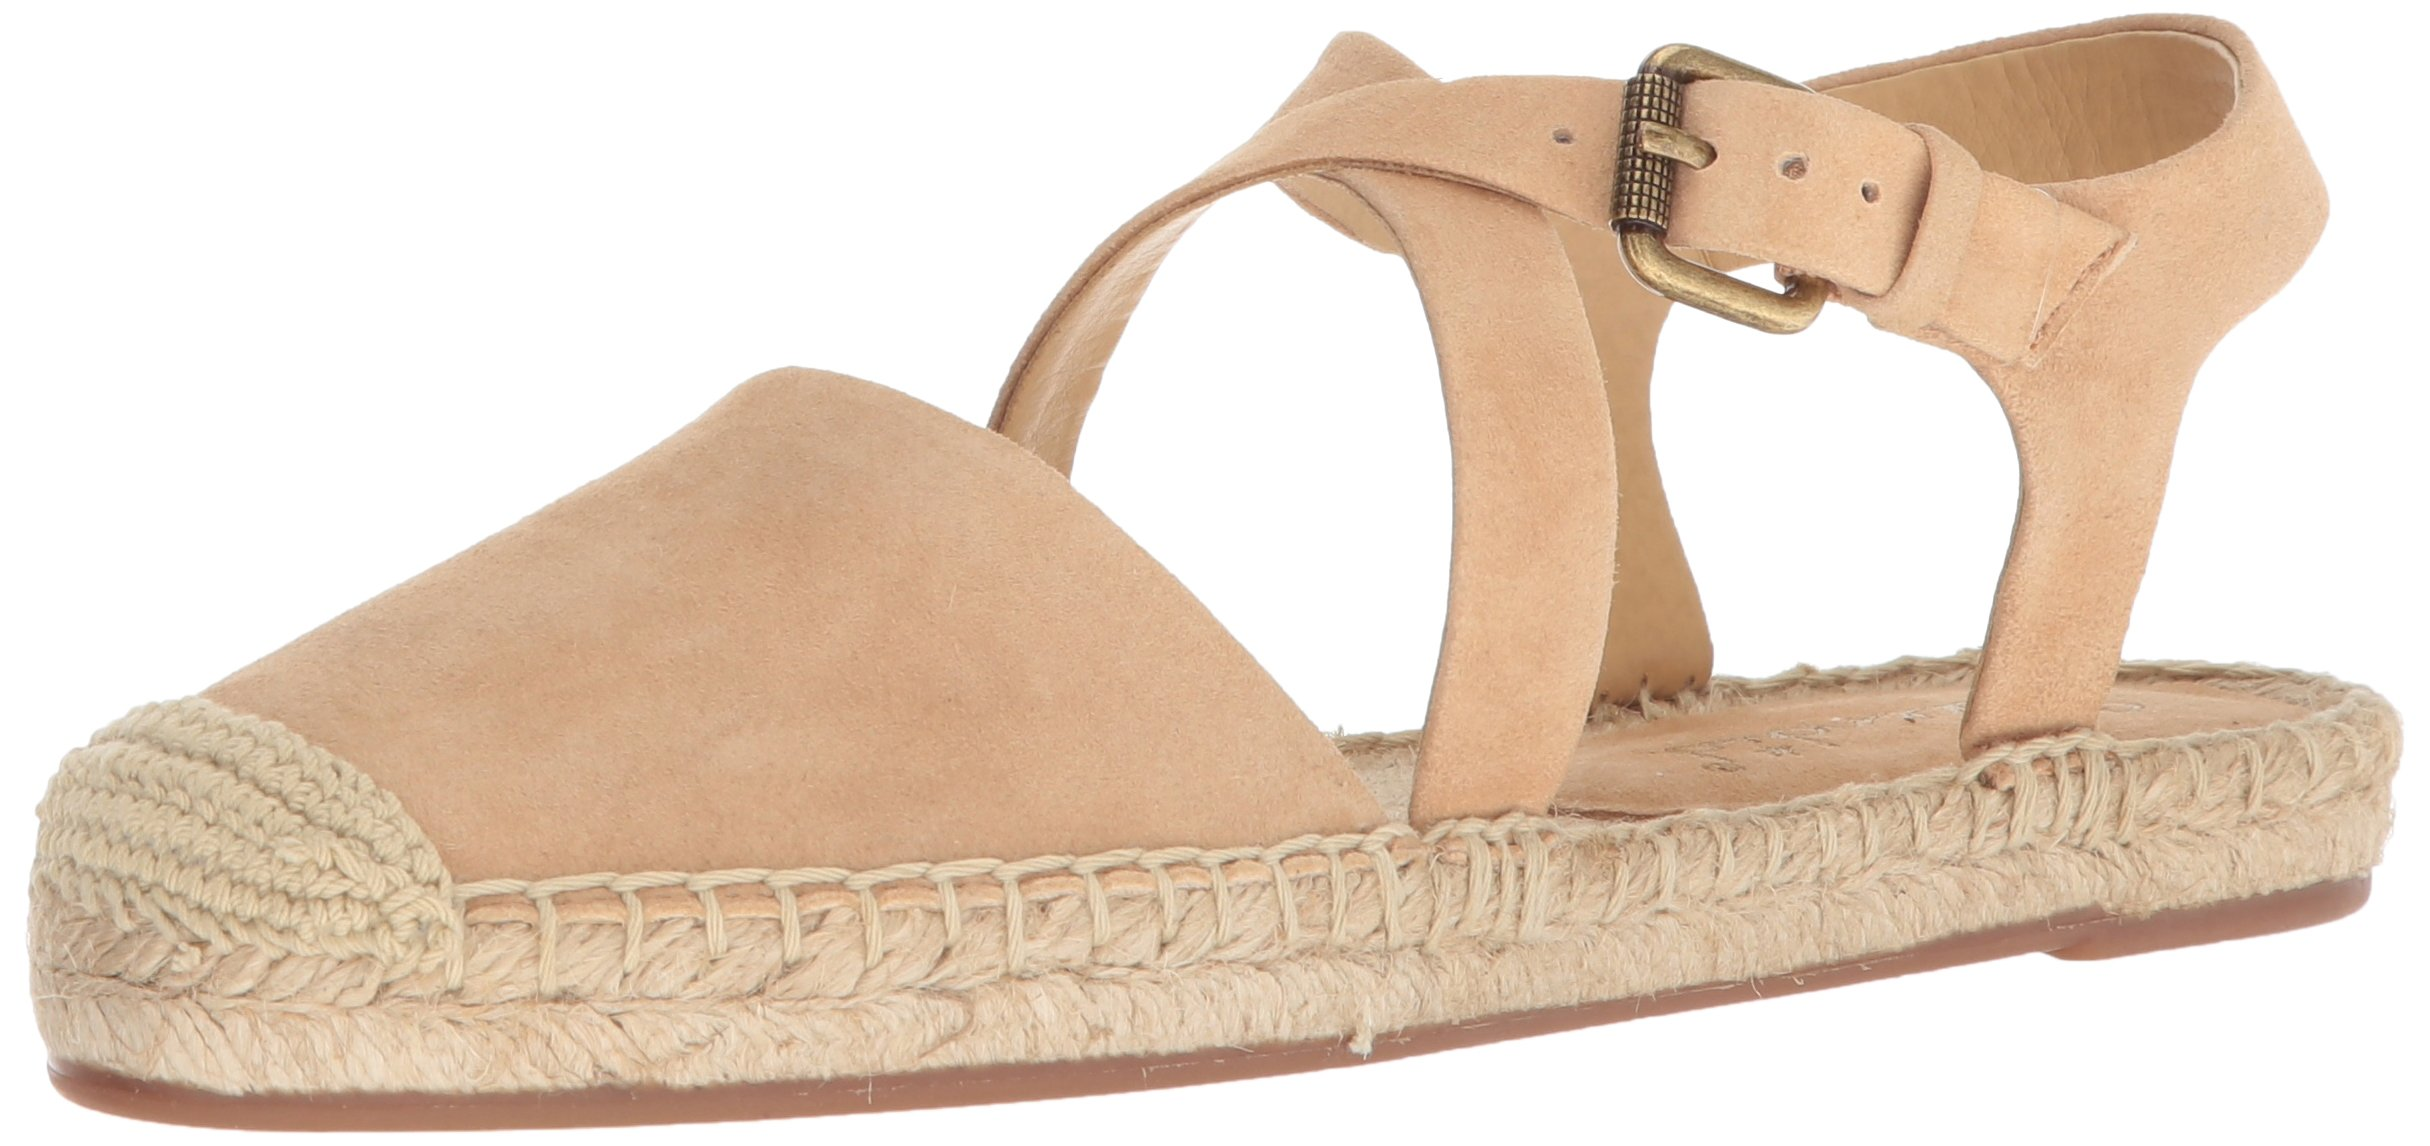 Splendid Women's Foley Flat Sandal, Nude, 10 Medium US